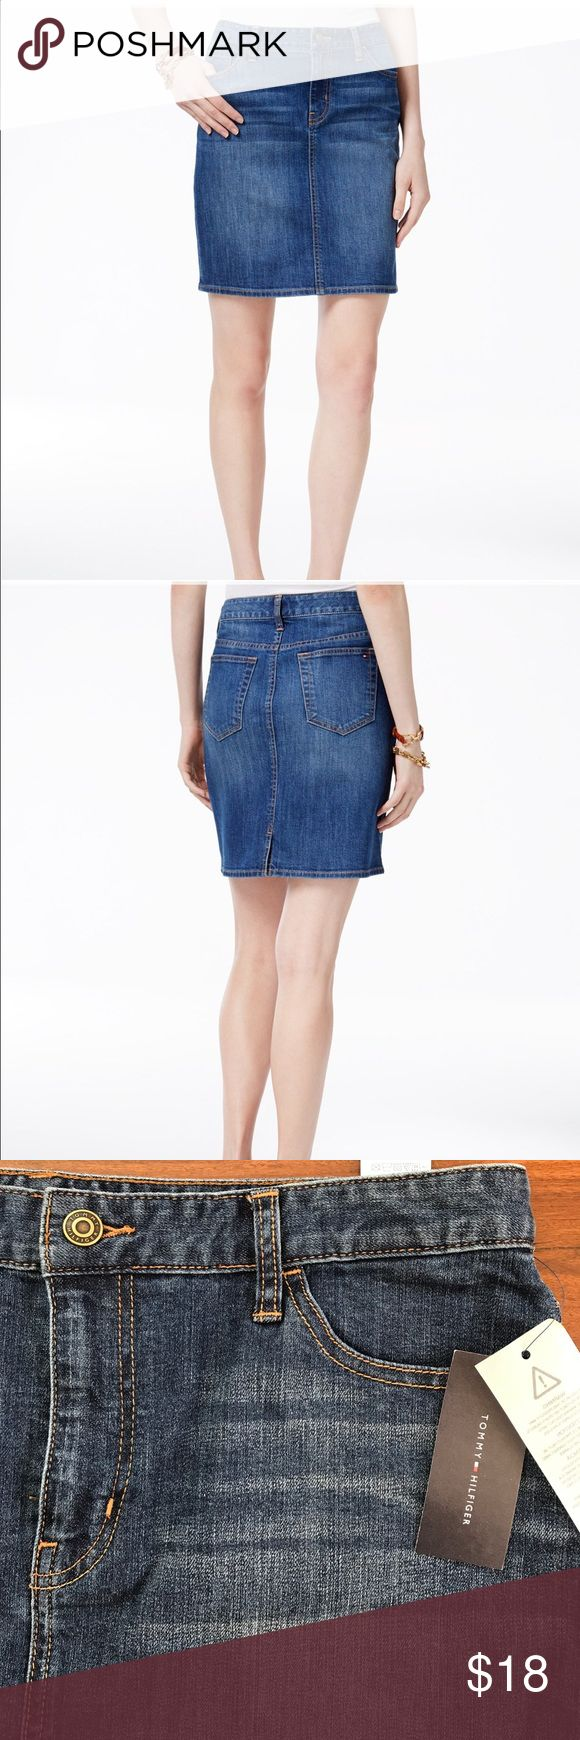 NWT Tommy Hilfiger Denim Skirt Size 12 TH classic Denim skirt. Zipper and button closure and belt loops. Slit at center back. Cotton/Lycra spandex 🙂 Tommy Hilfiger Skirts